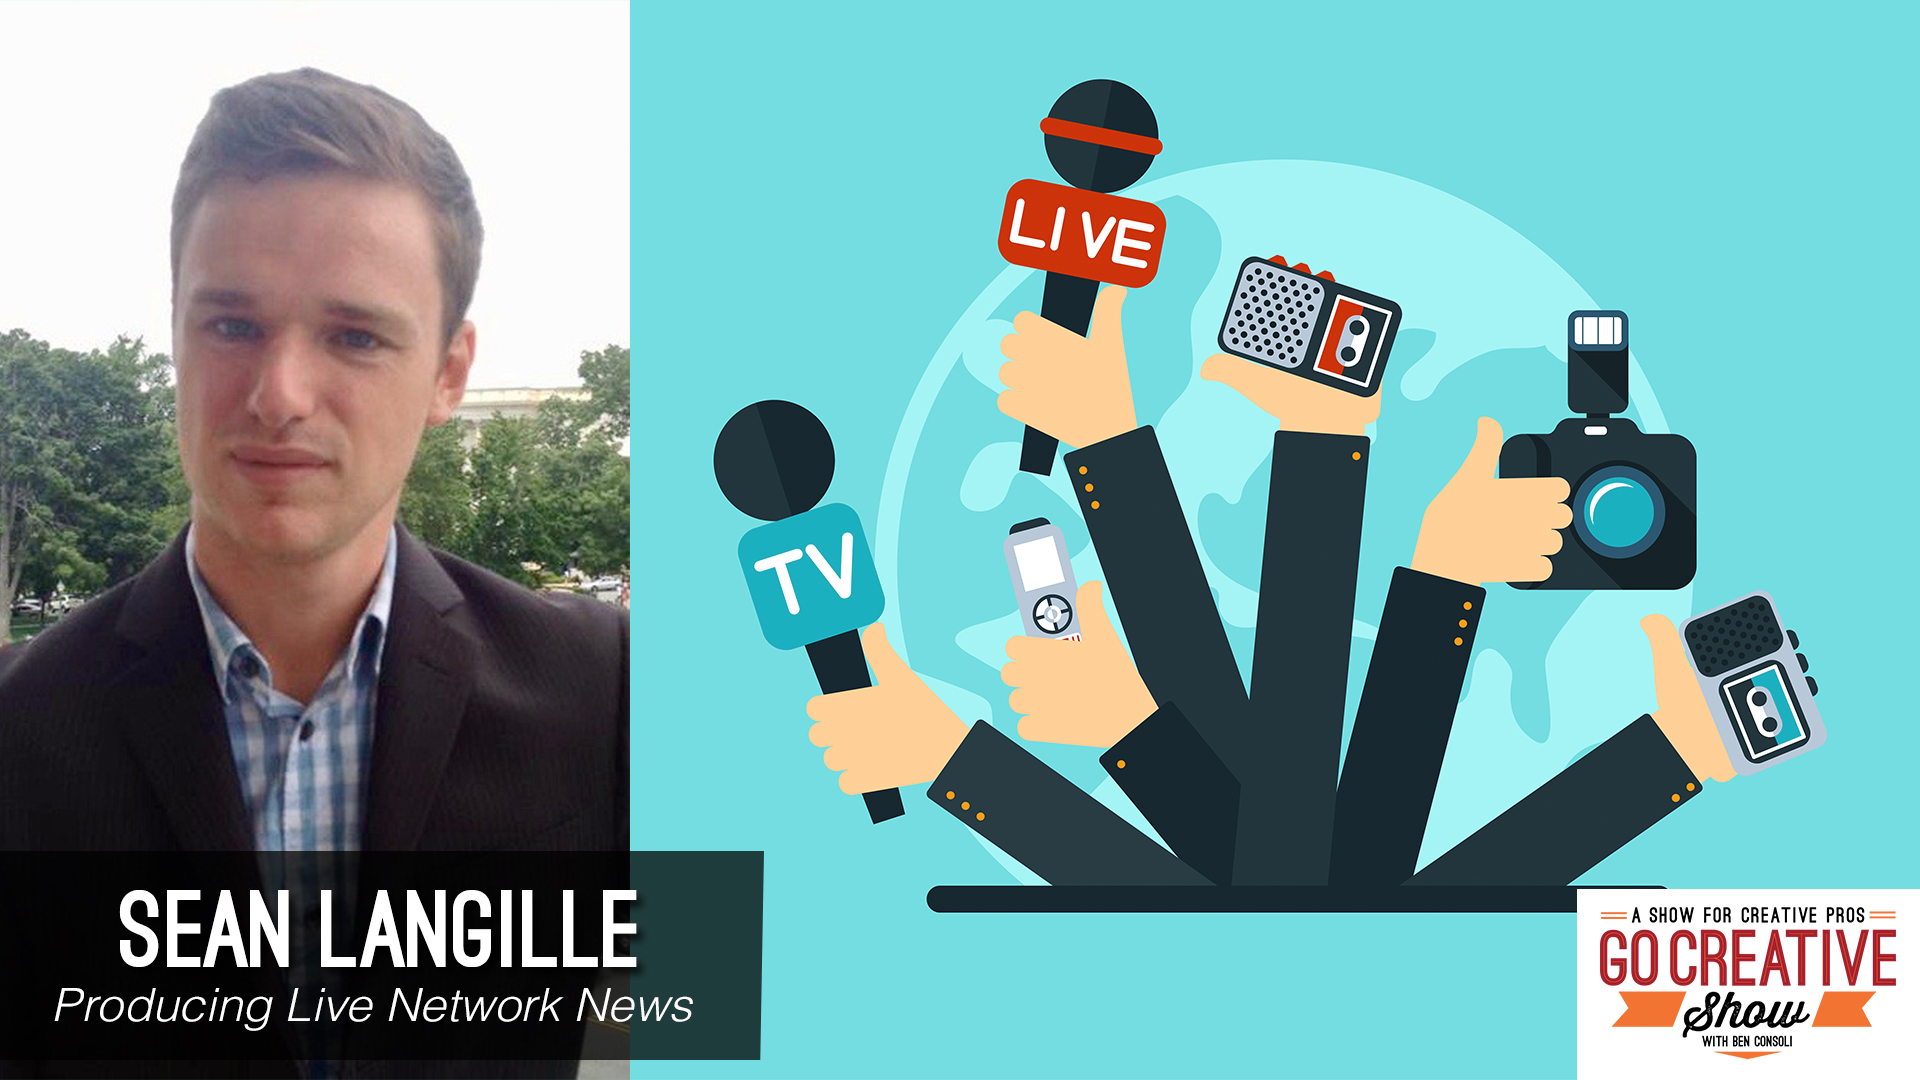 Sean Langille Fox News producers on Go Creative Show with Ben Consoli